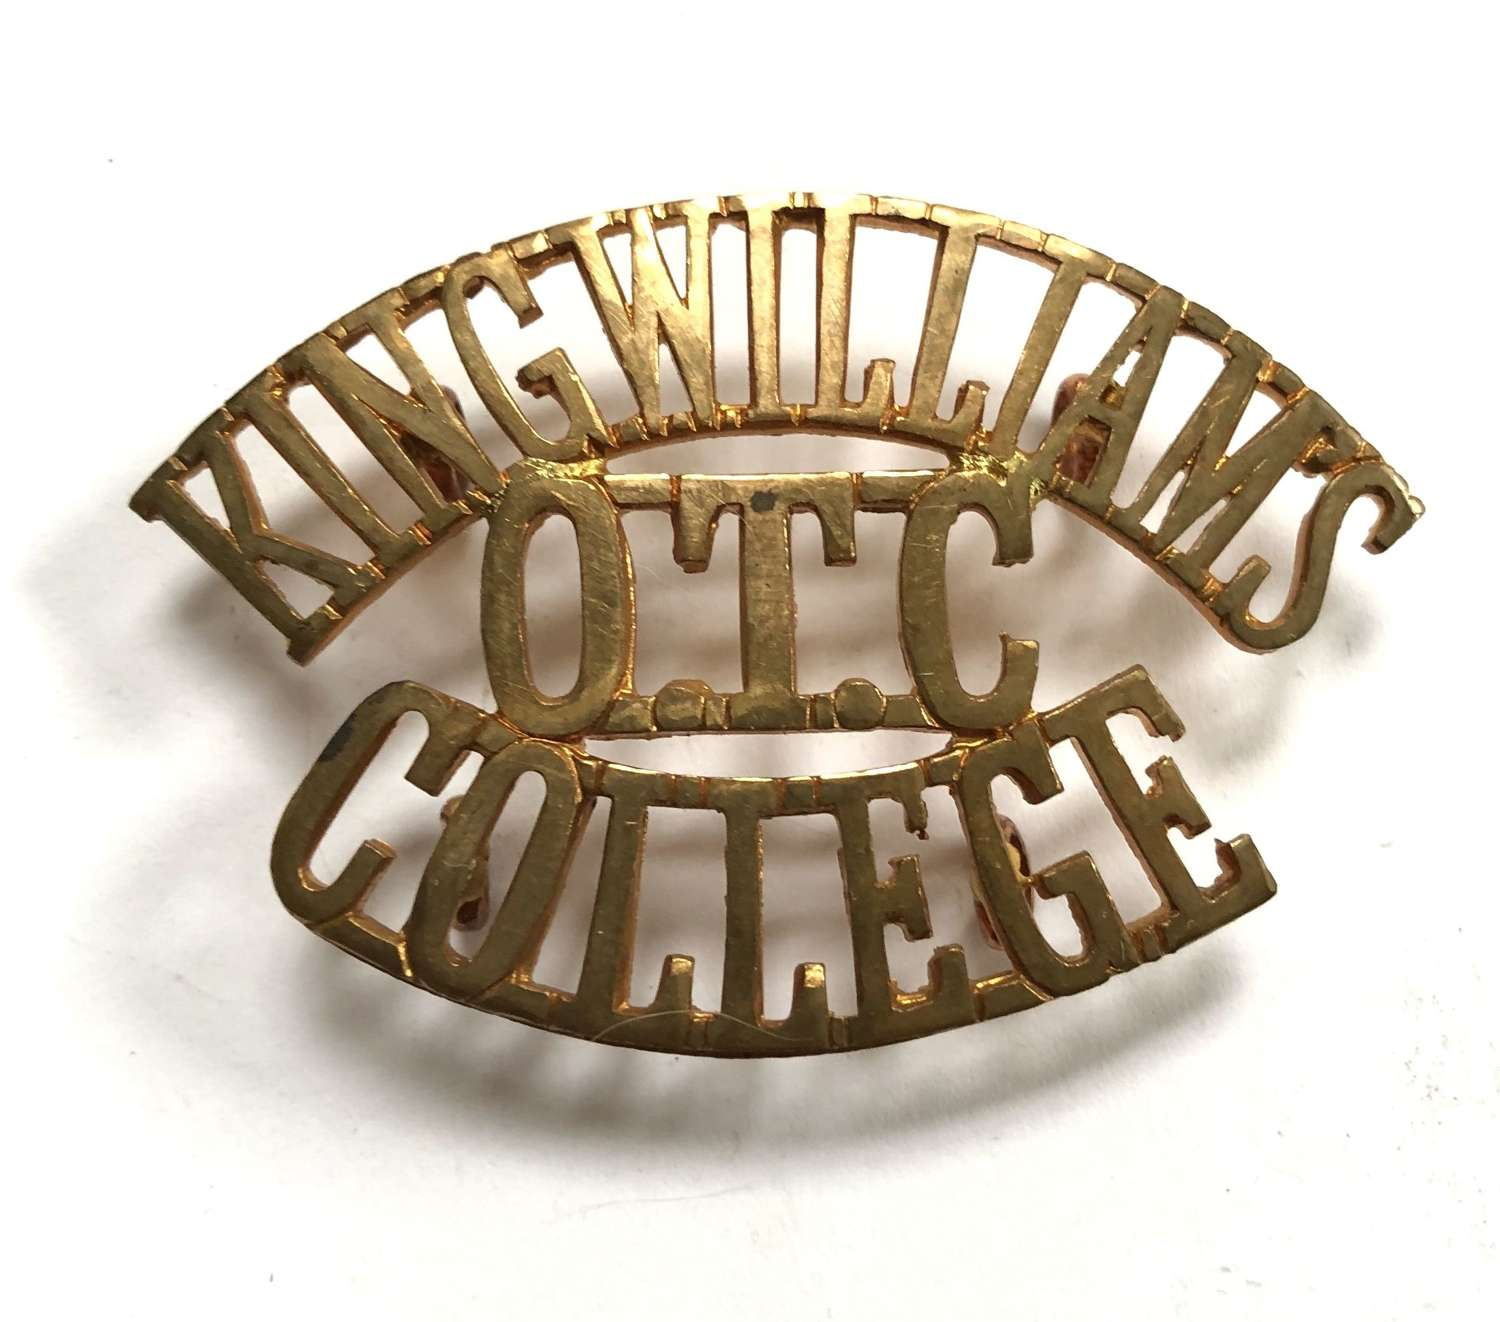 KING WILLIAM'S  / OTC / COLLEGE Isle of Man shoulder title title